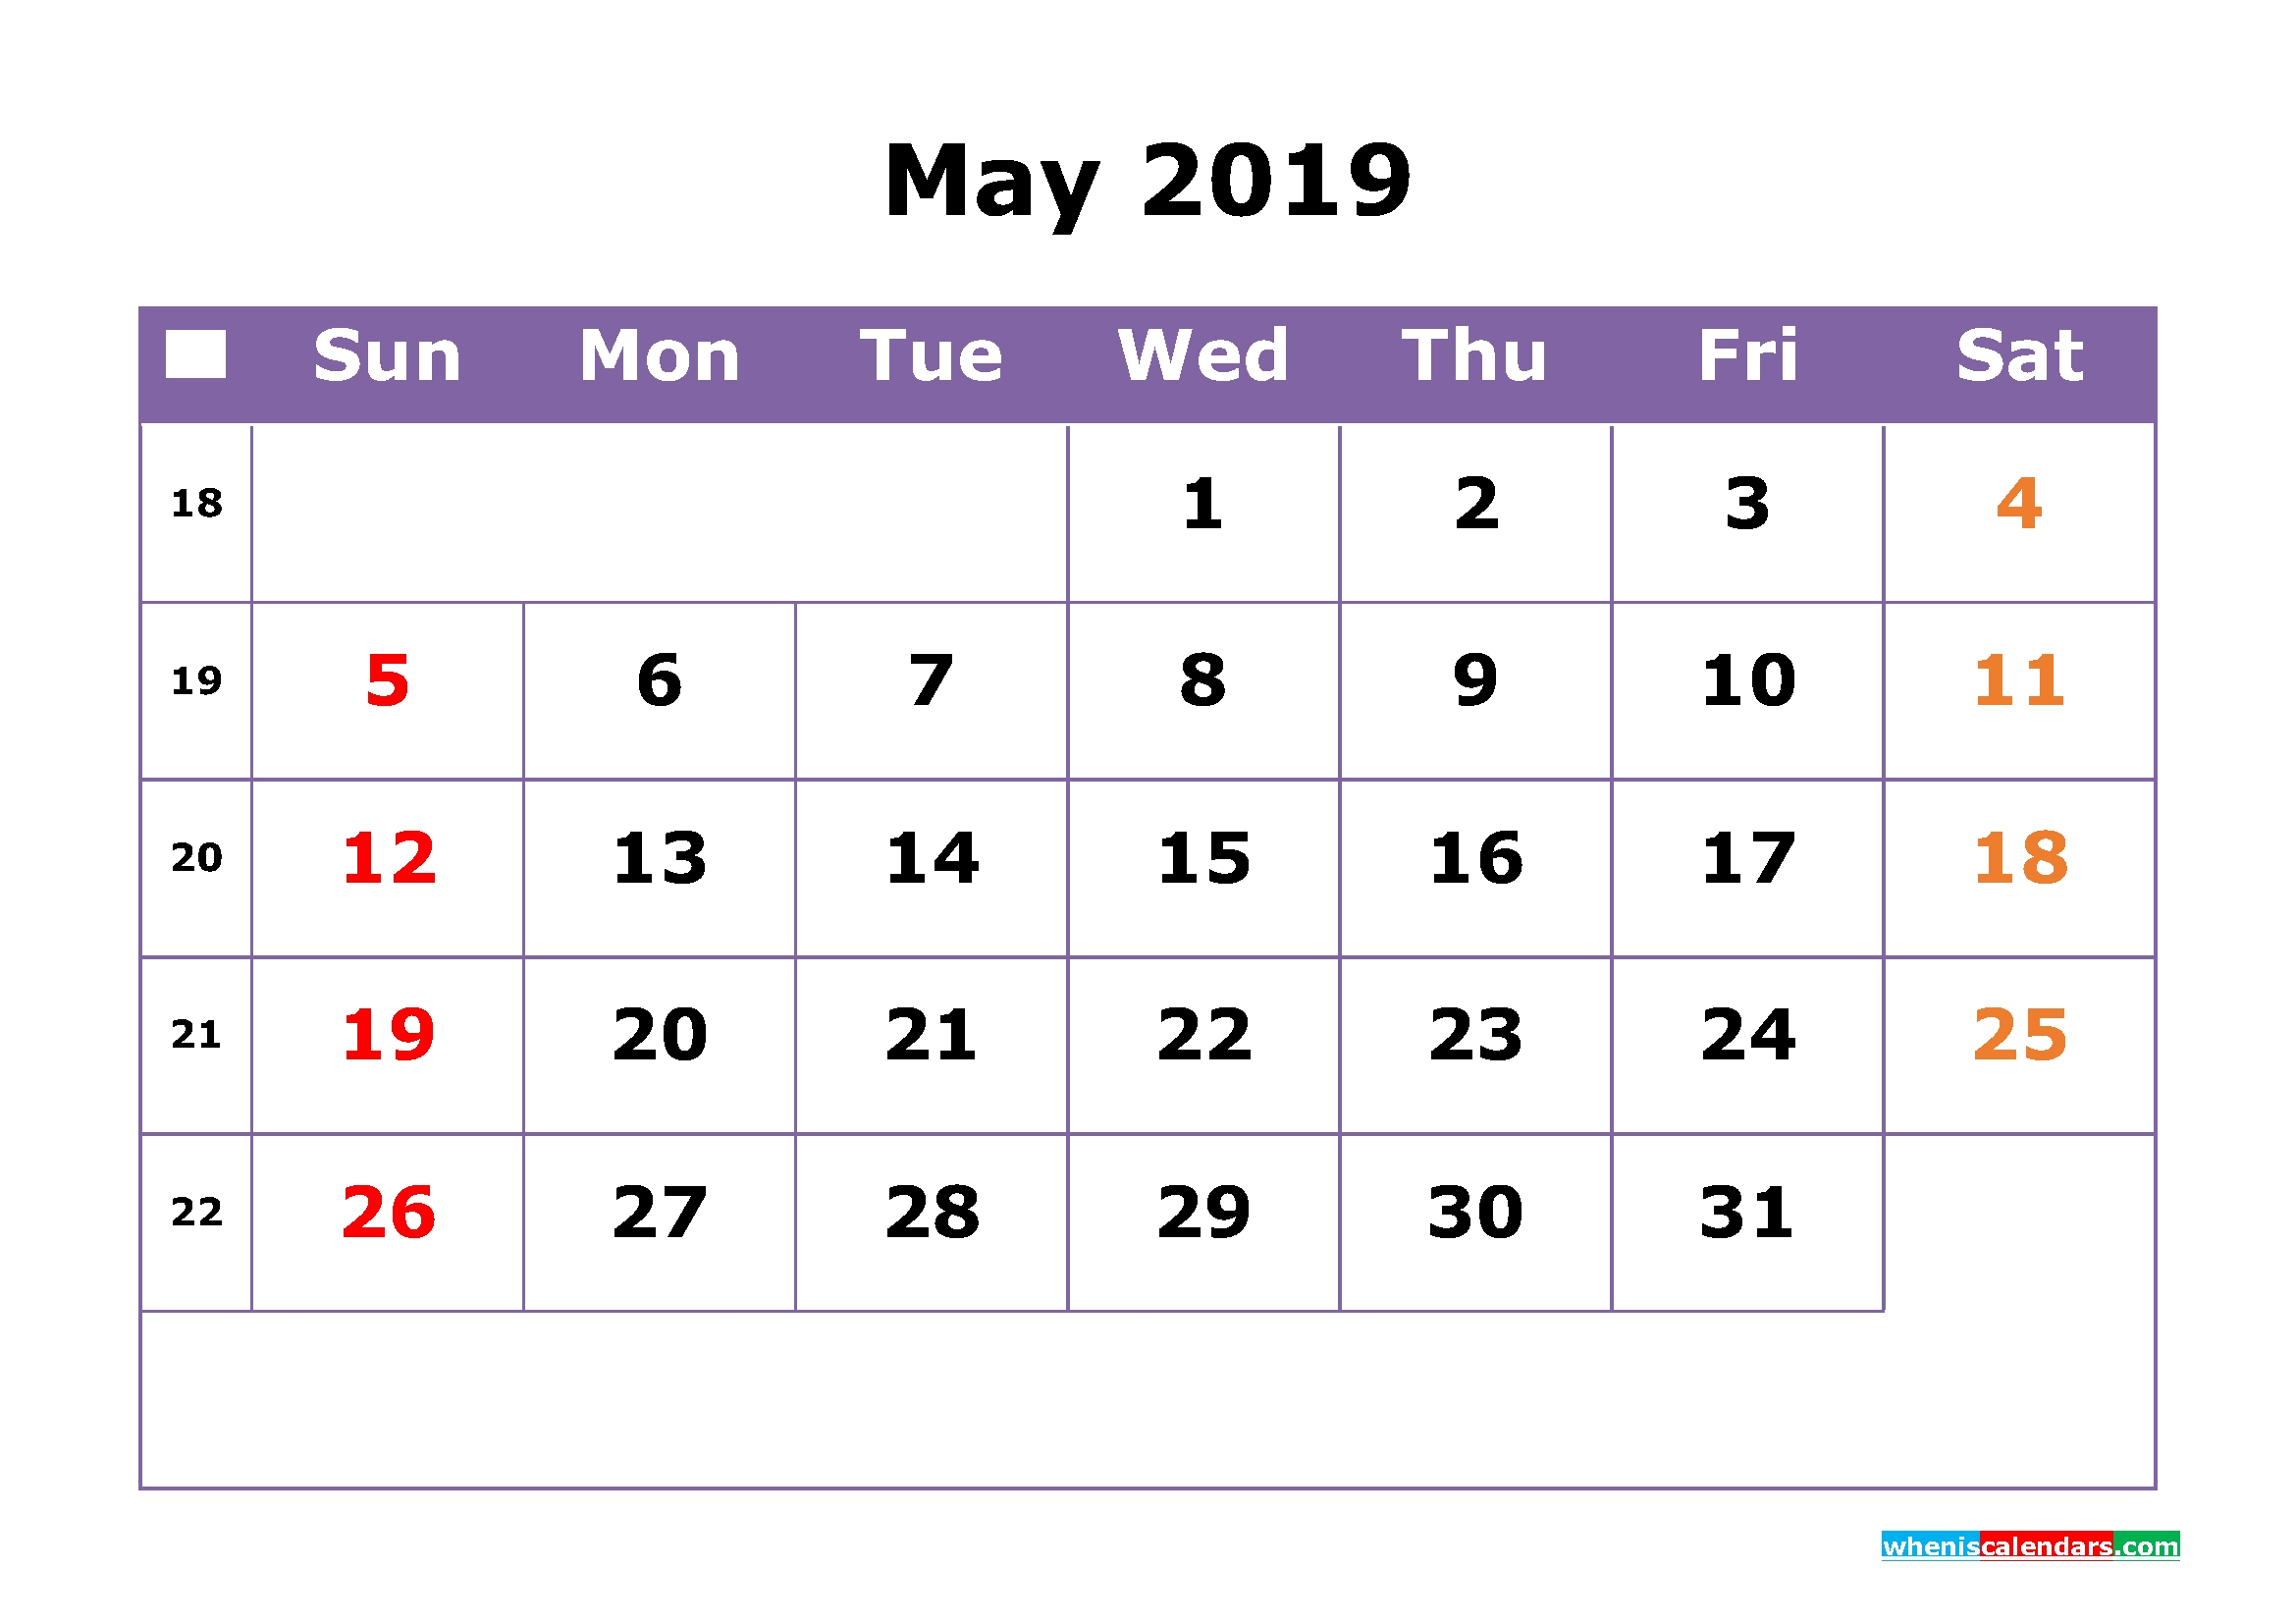 May 2019 Printable Calendar With Week Numbers For Free Download Calendar 2019 With Week Numbers